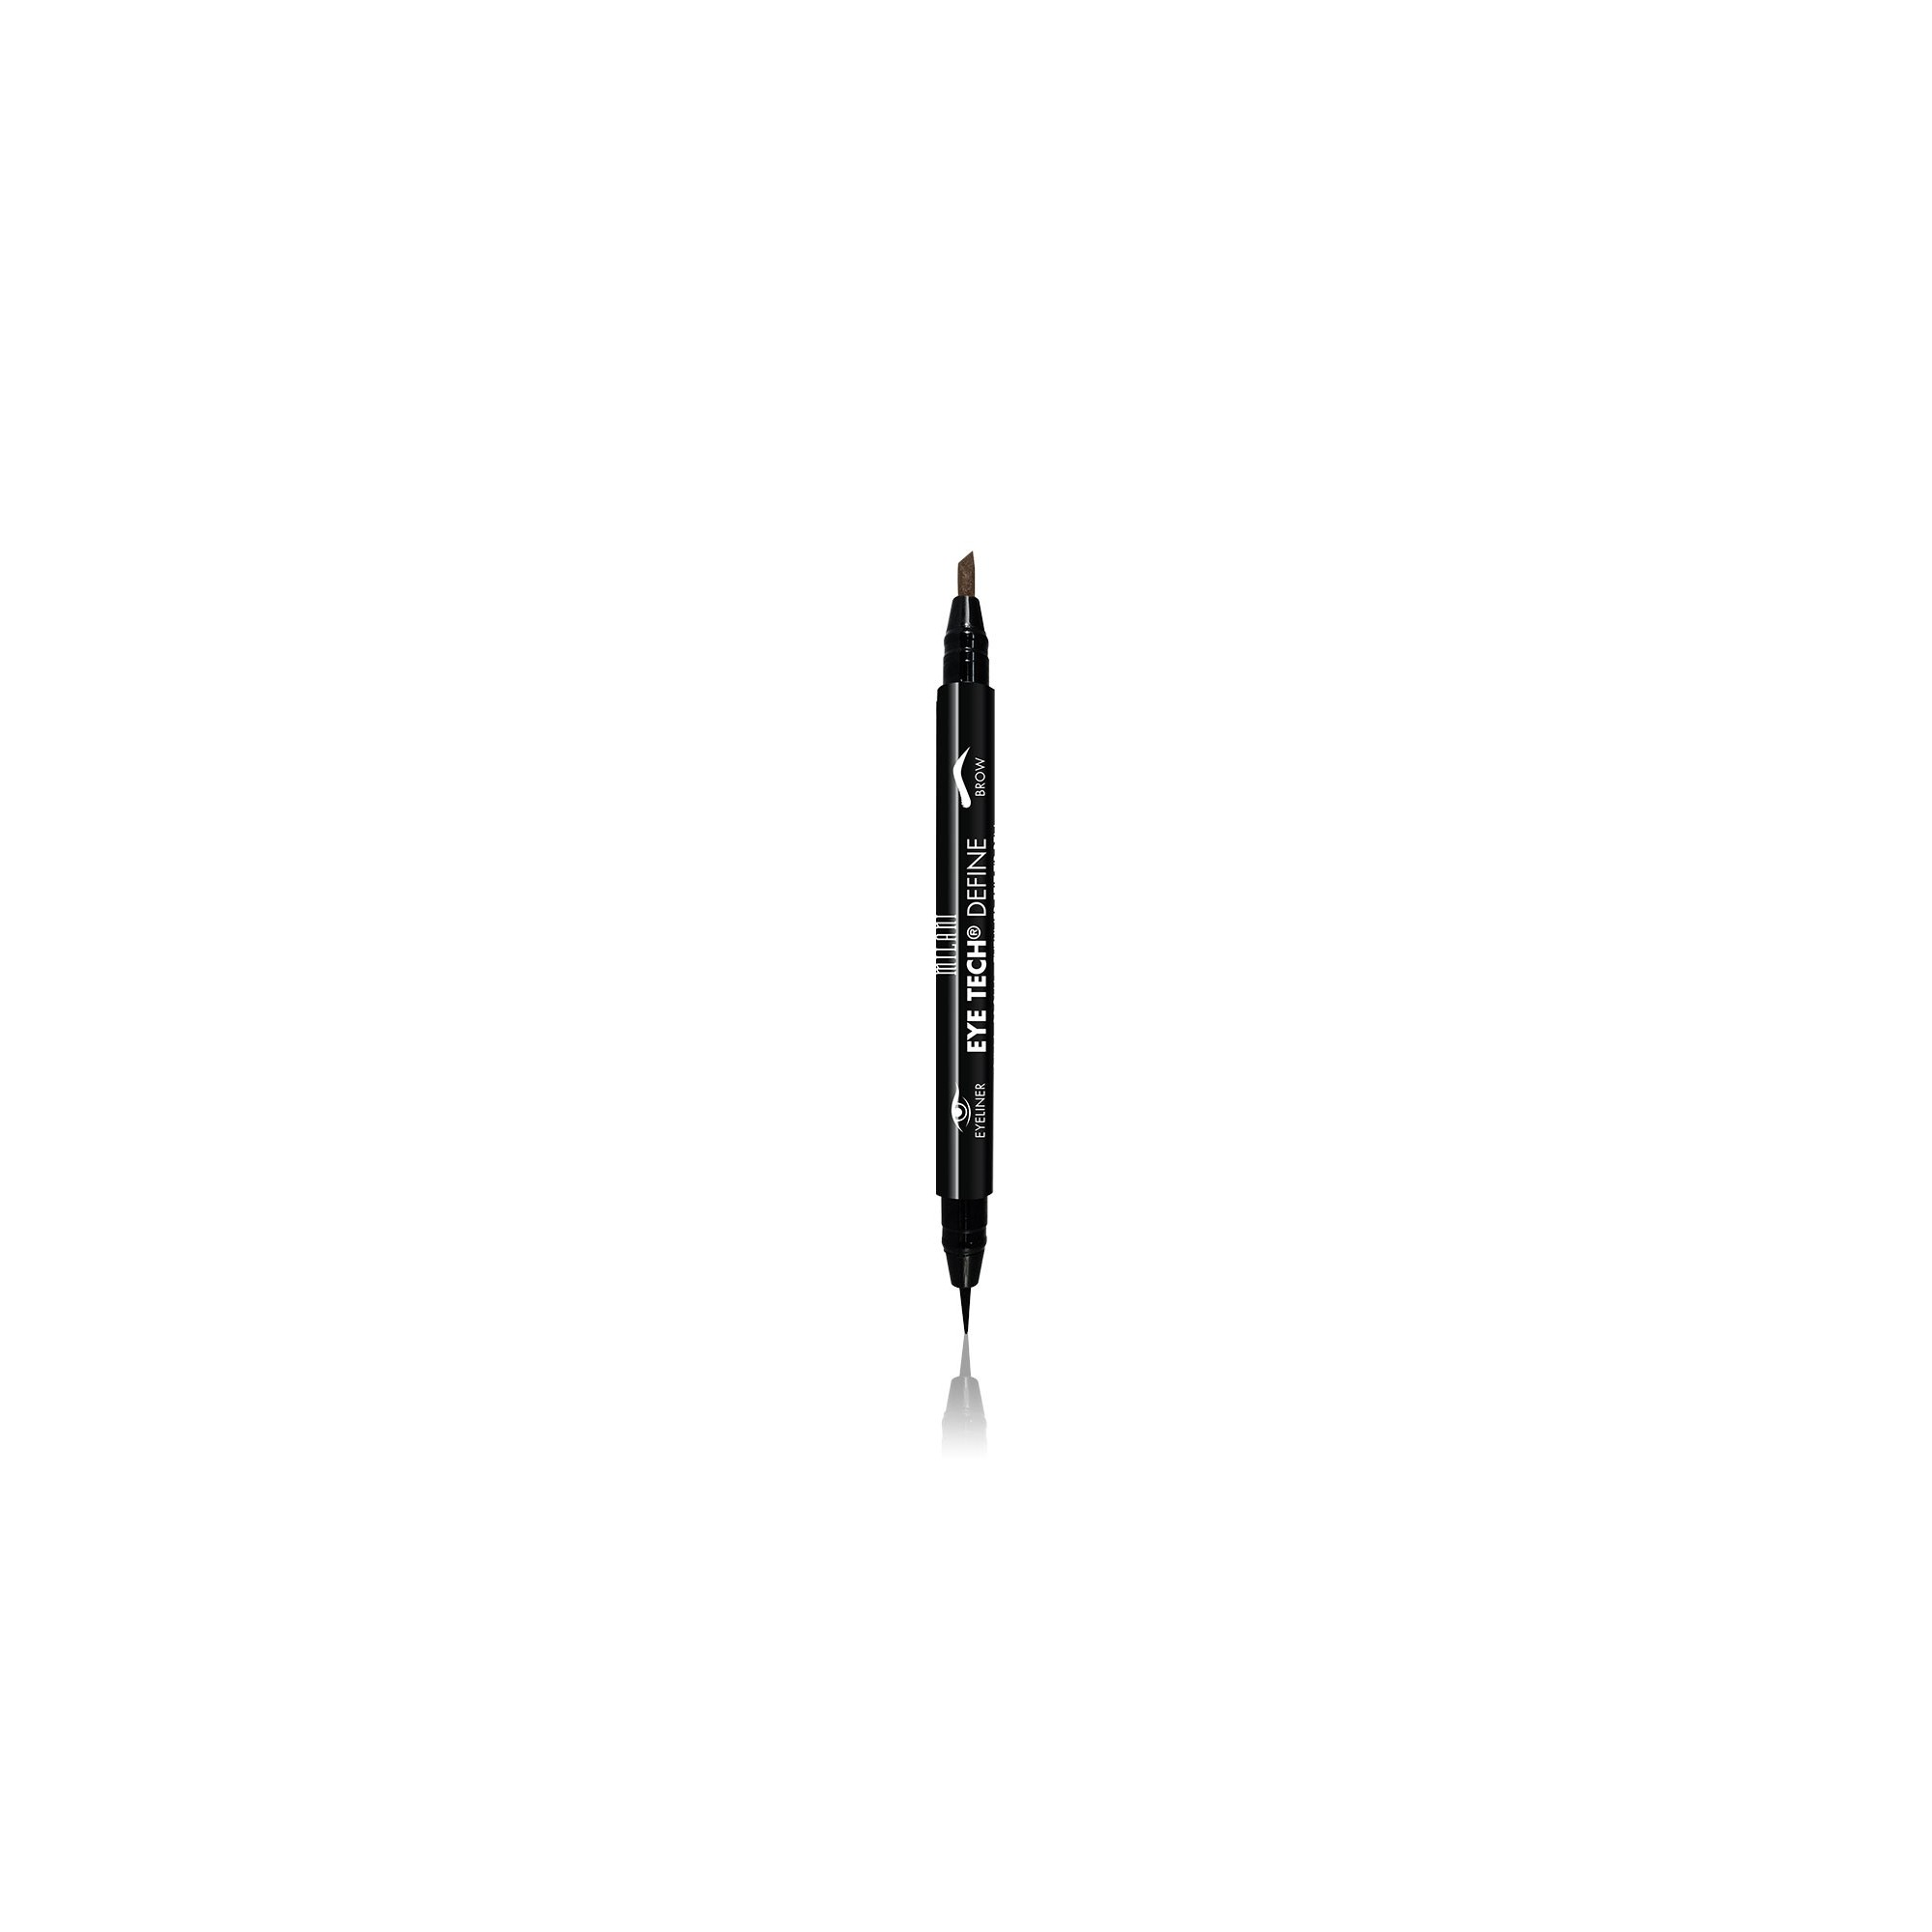 Milani Eye Tech Define 2IN1 Brow - Eyeliner Felt Tip Pen Dark Brown - Black